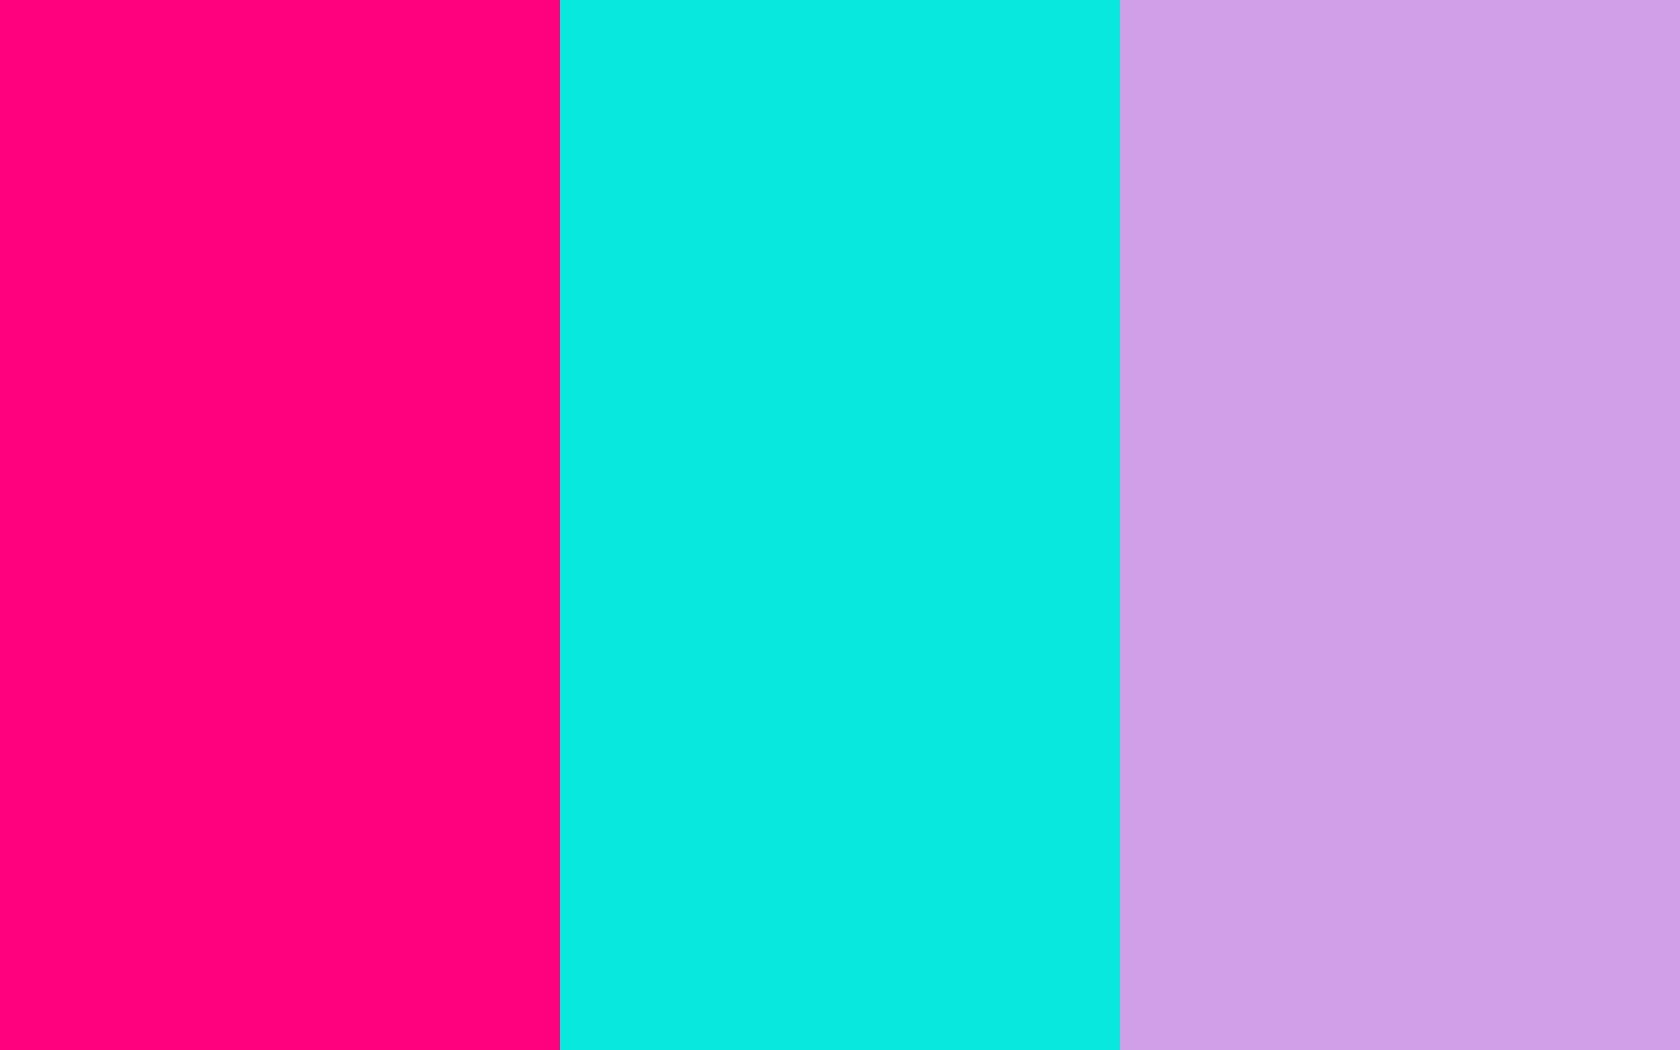 Free 1680x1050 Resolution Bright Pink Bright Turquoise And Bright Ube Pink And Turquoise Wallpaper Hot Pink Wallpaper Pink Wallpaper Light